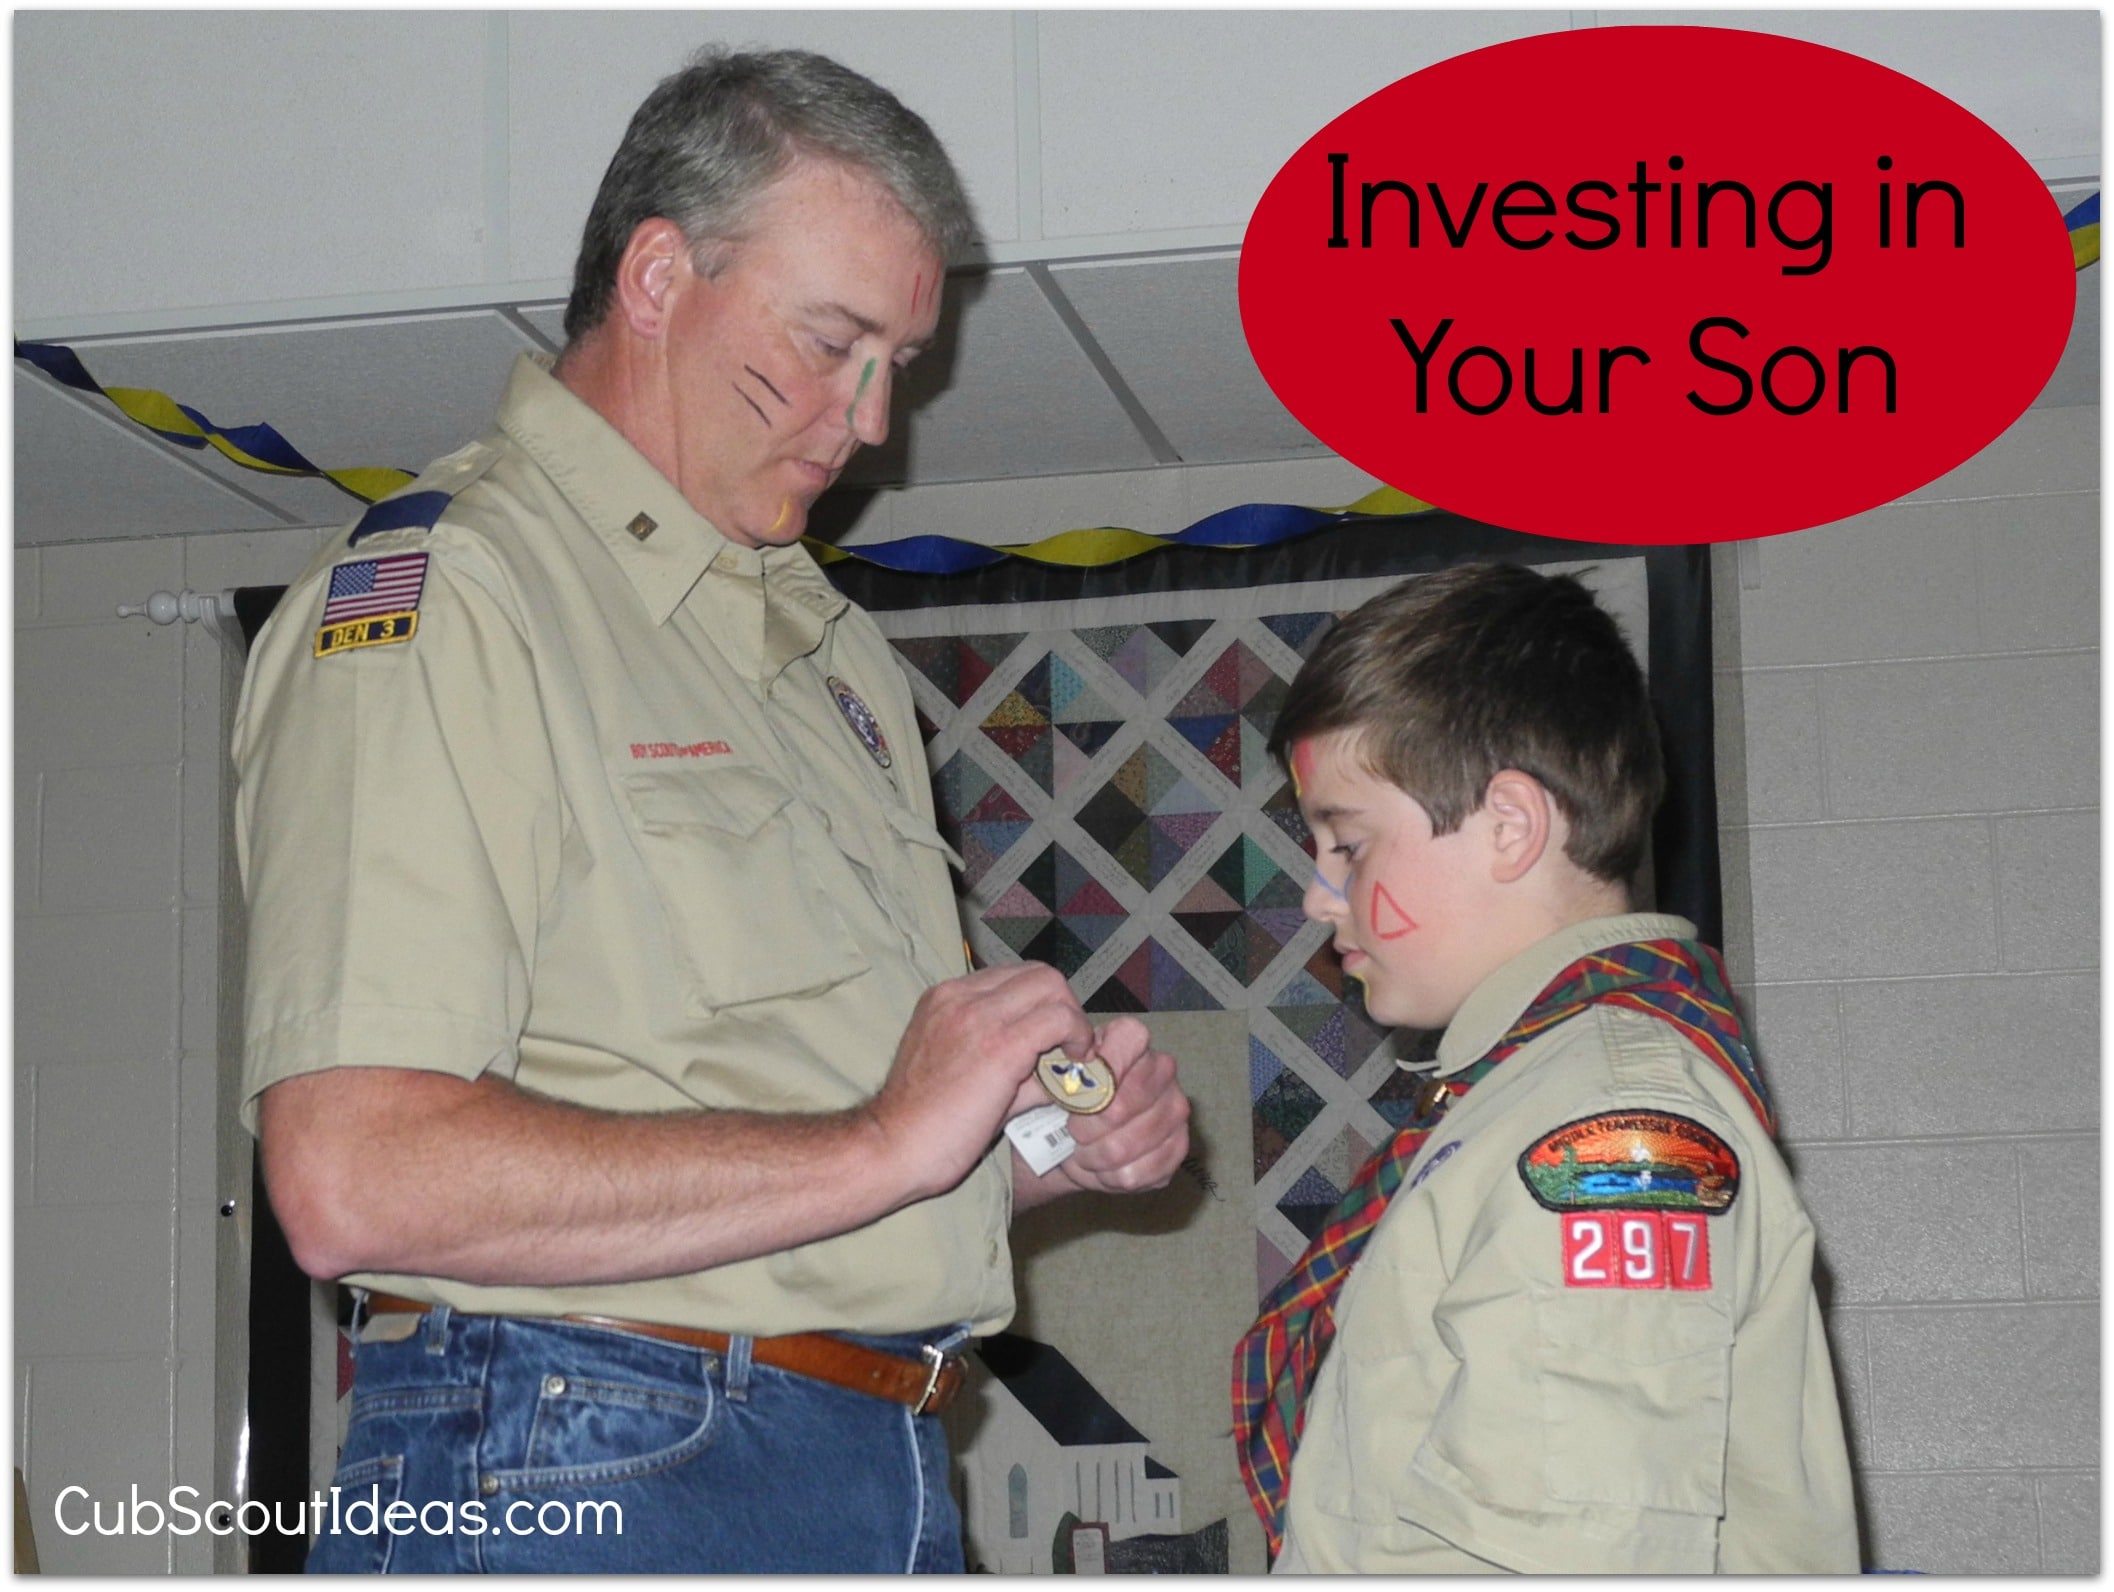 cub scout investing in your son